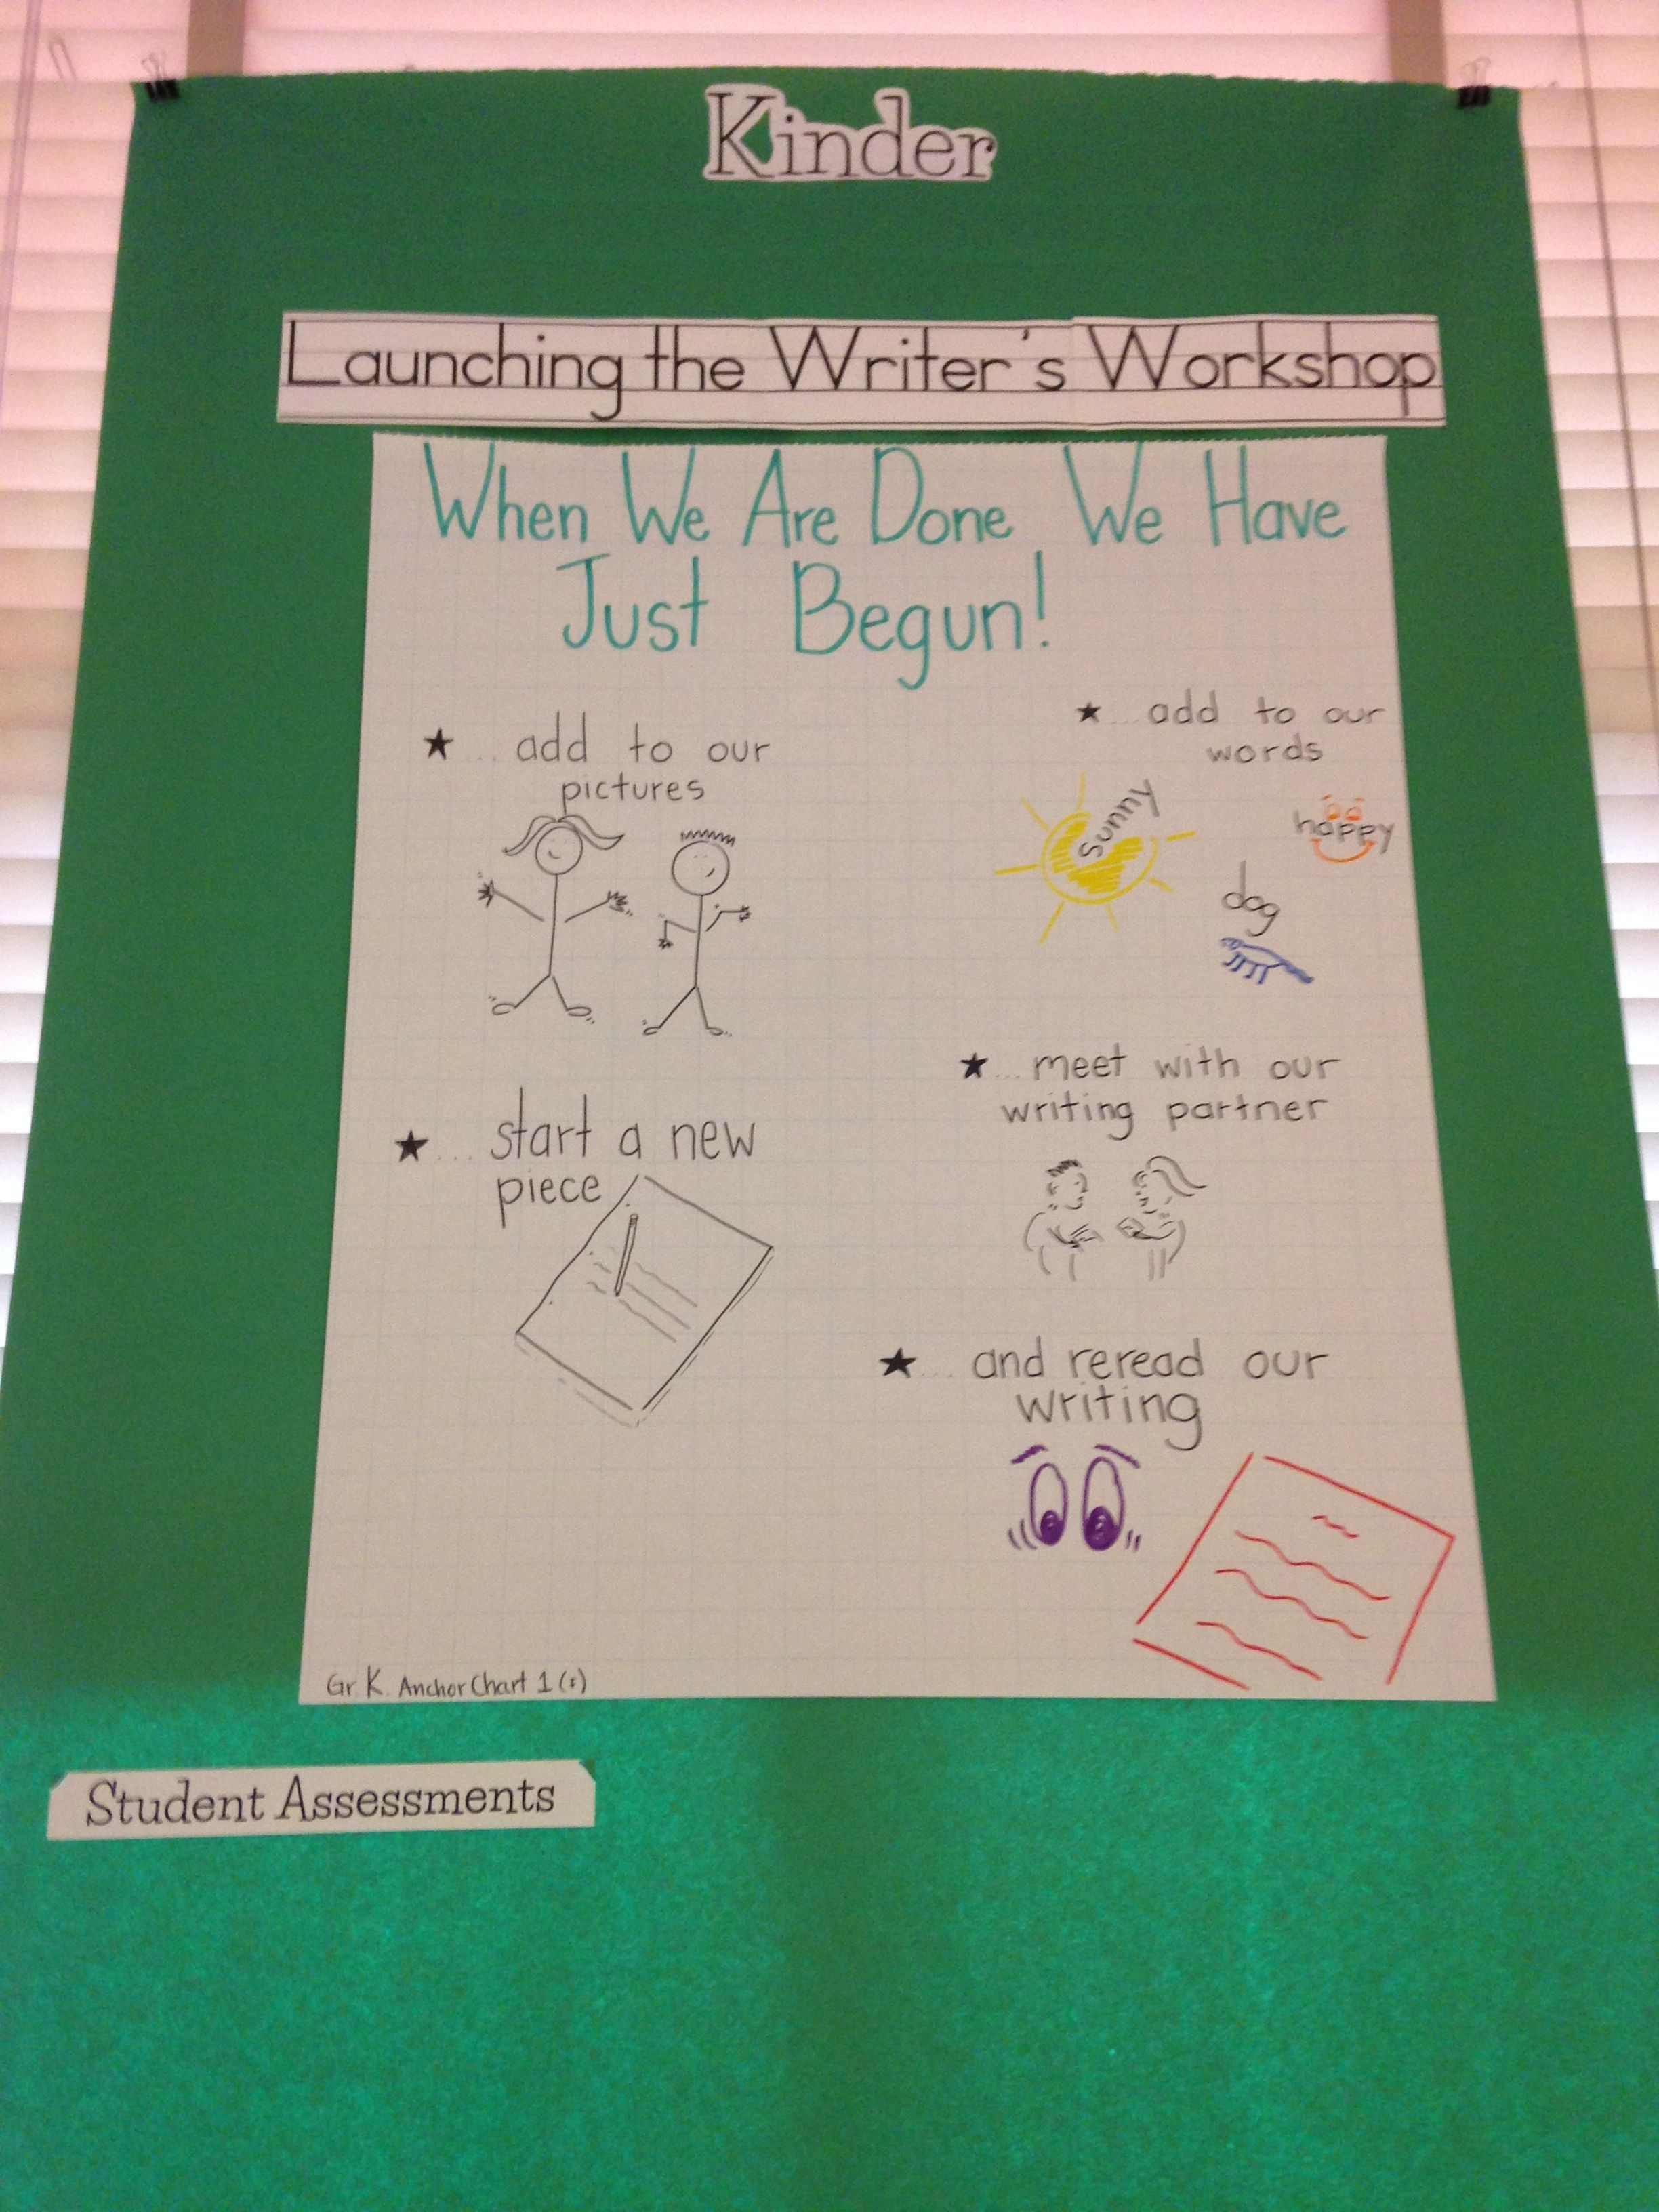 Kindergarten Anchor Chart From Launching The Writer S